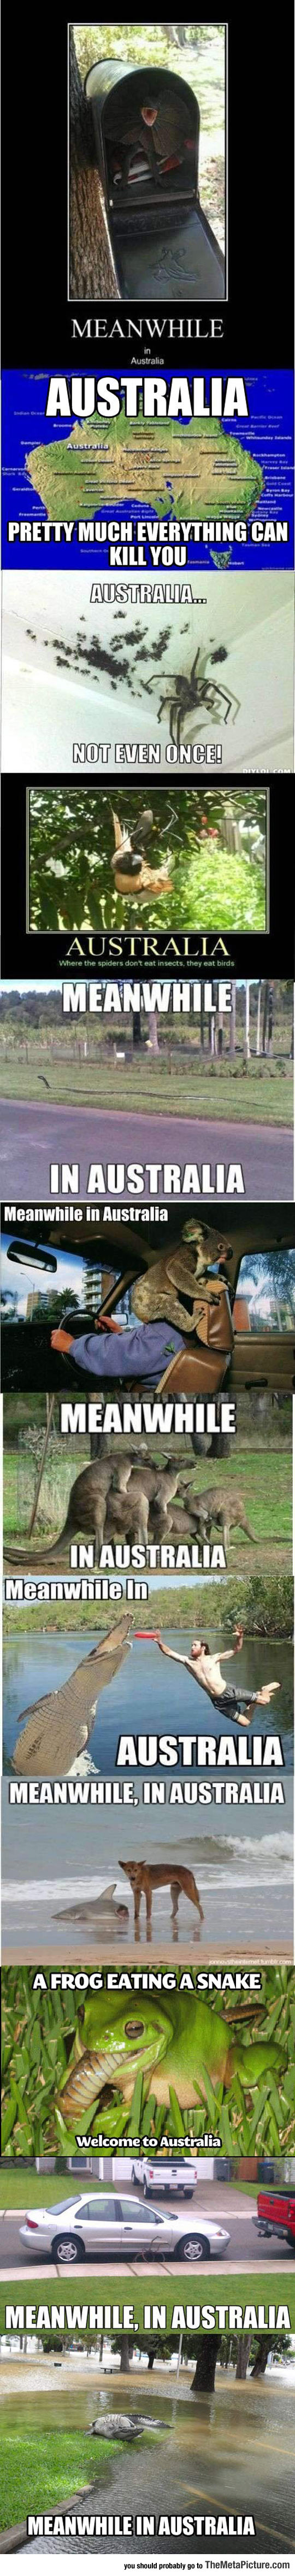 Some Truths About Australia